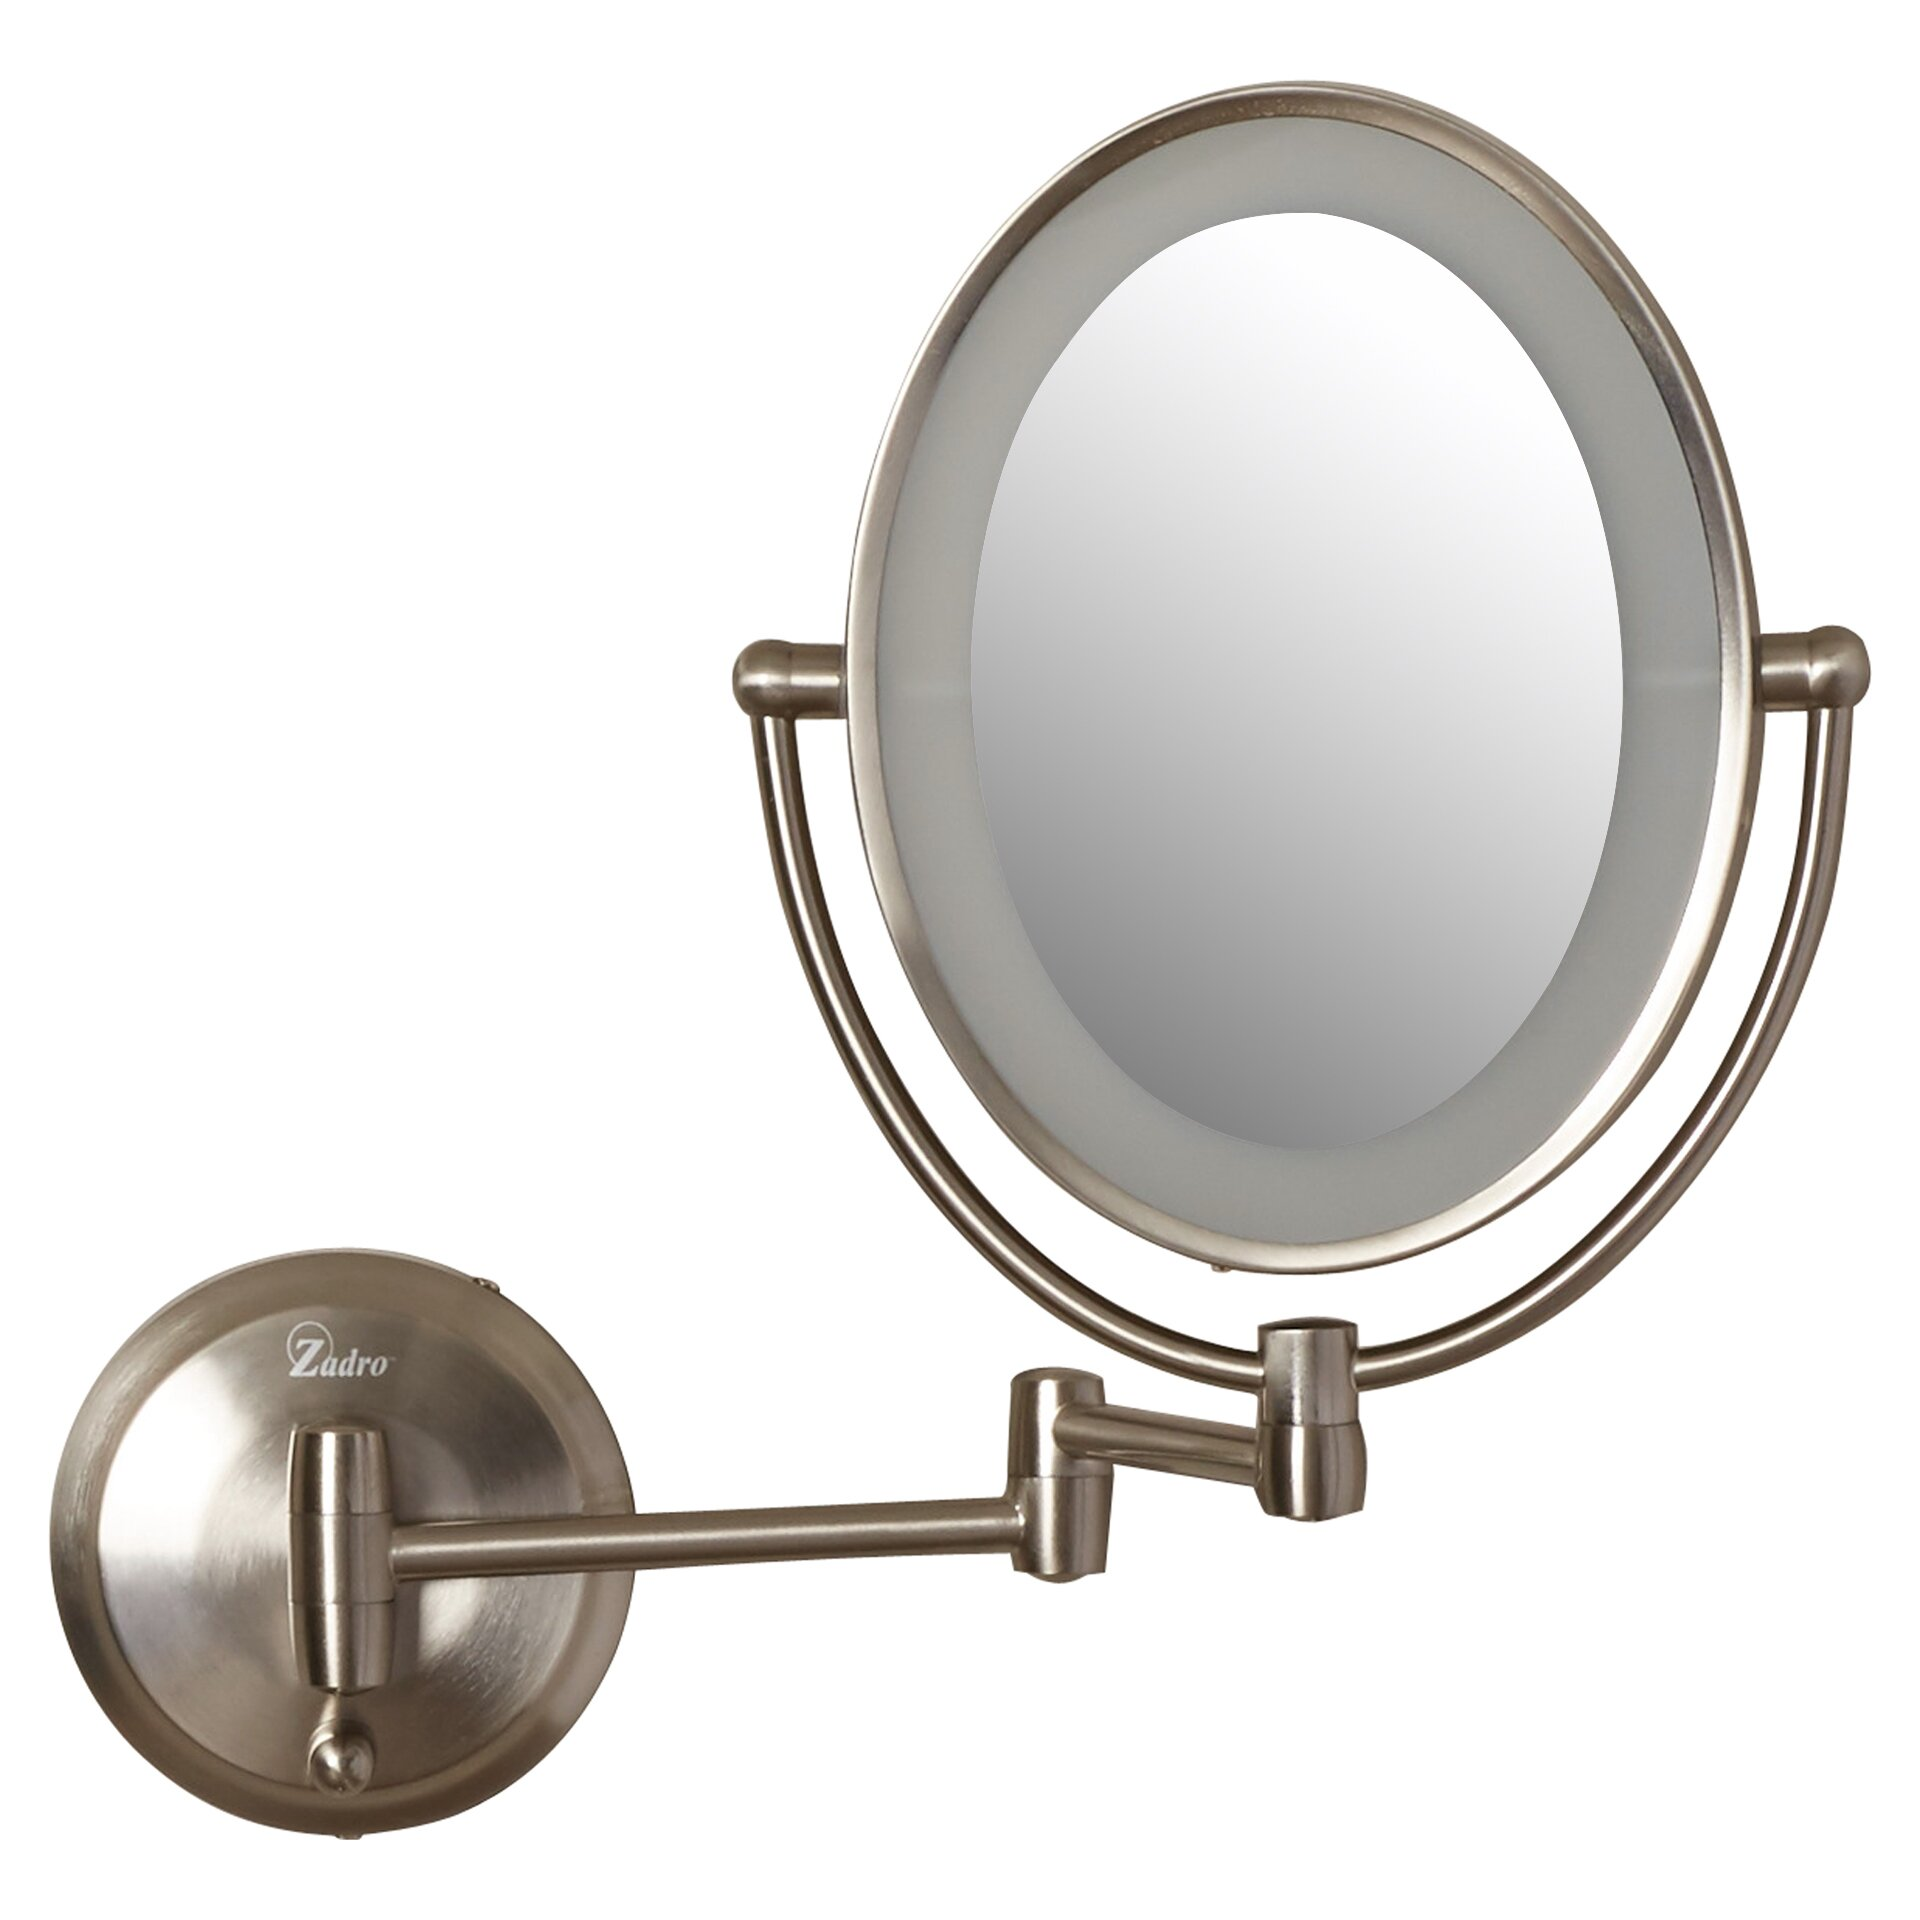 Wall mounted makeup mirror with lights - Zadro Led Lighted 1x 10x Magnification Mount Wall Mirror